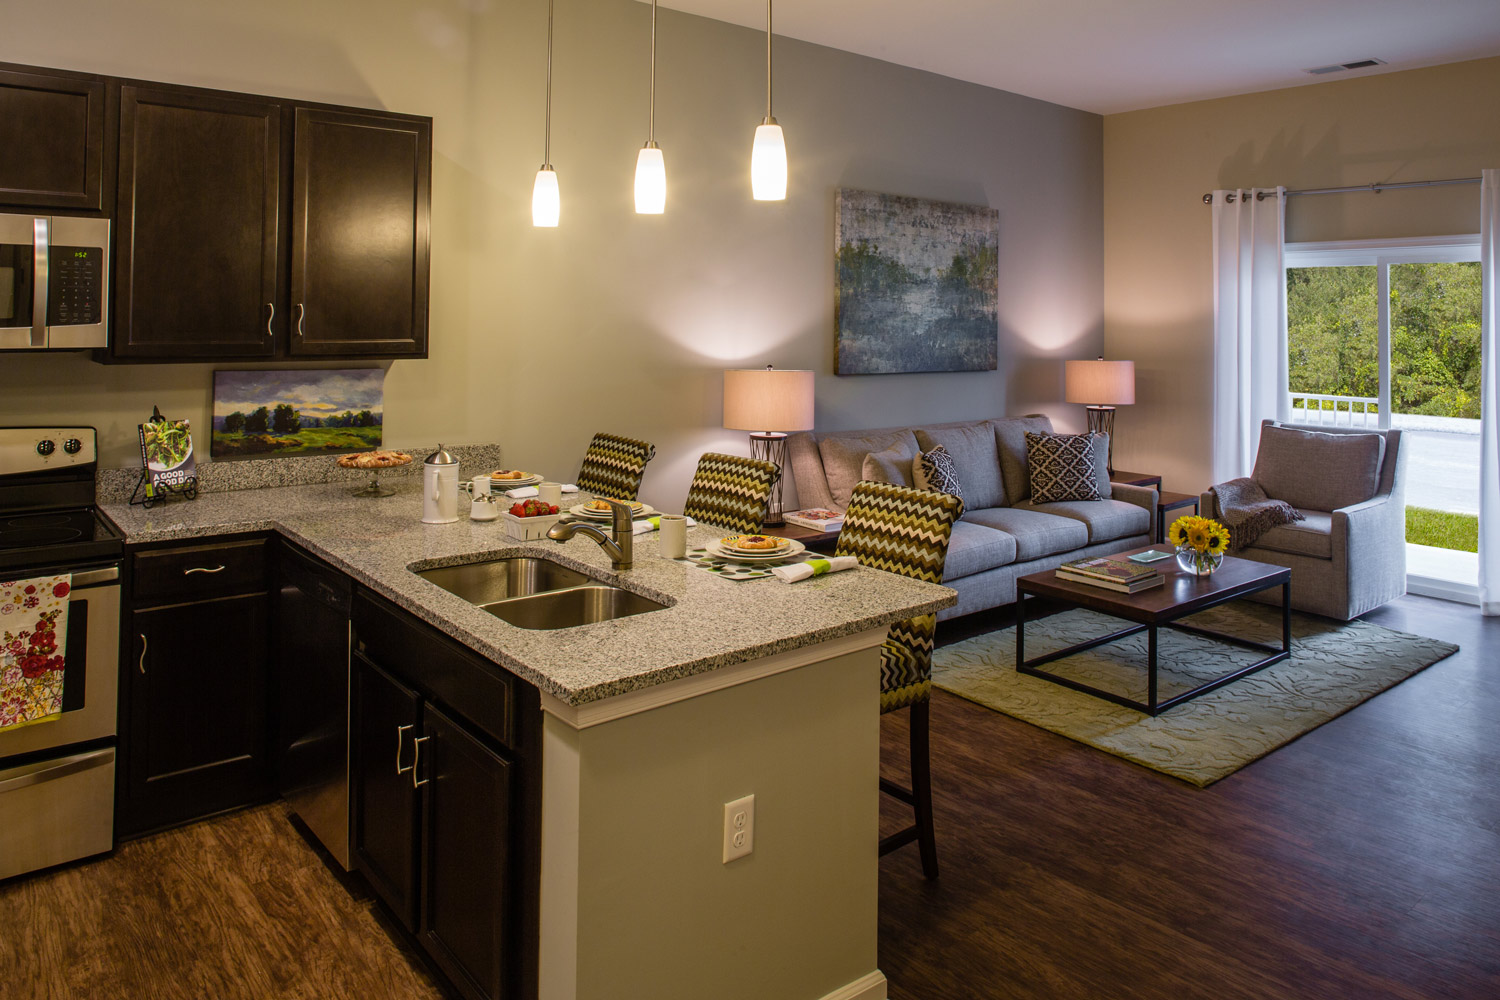 Kitchen at The Watermark Apartments in Norfolk, Virginia